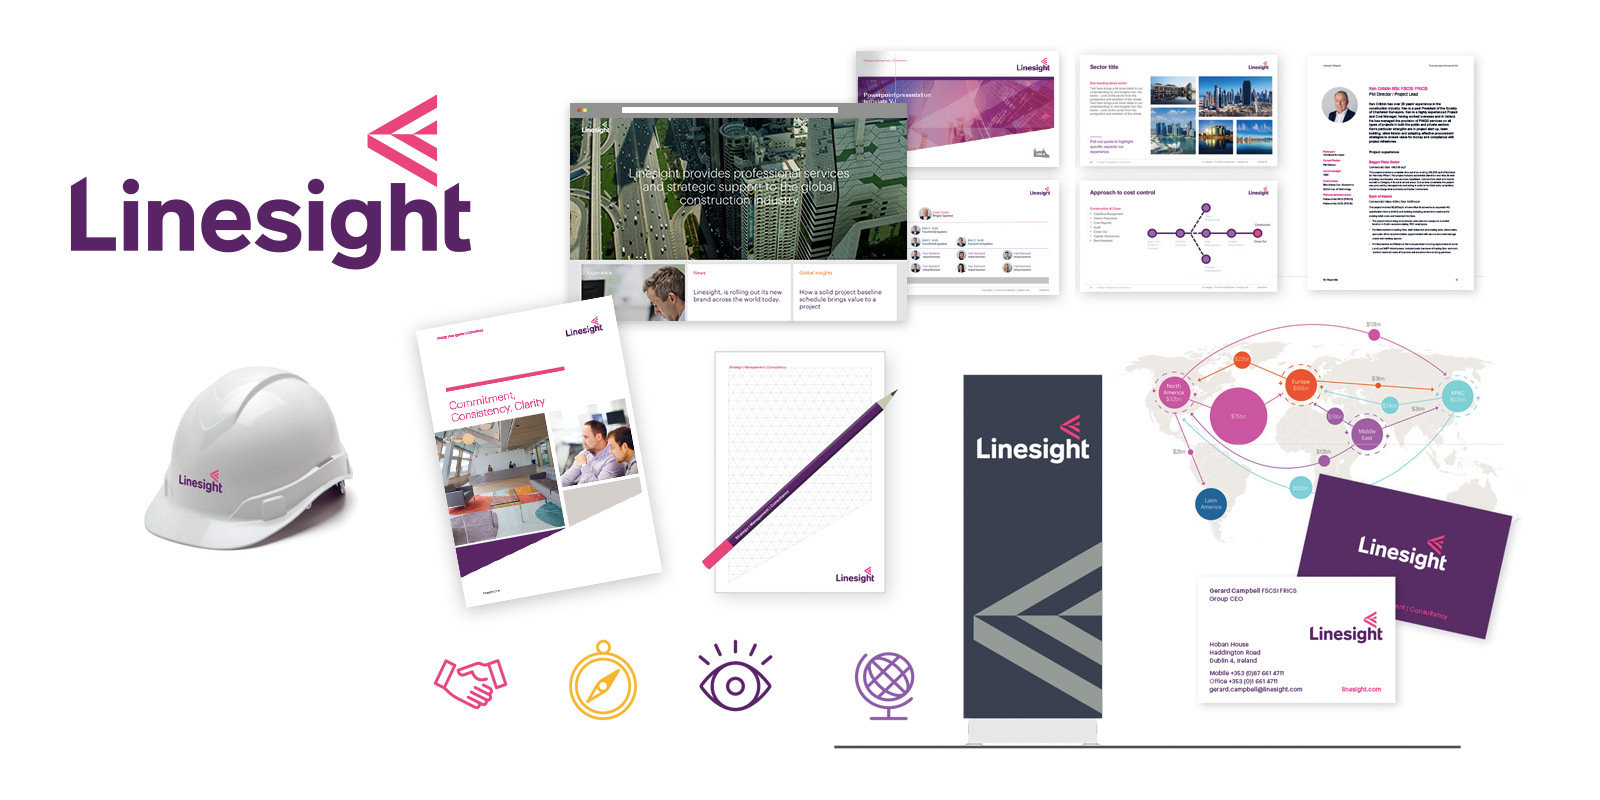 Construction consultancy Bruce Shaw rebrands as Linesight